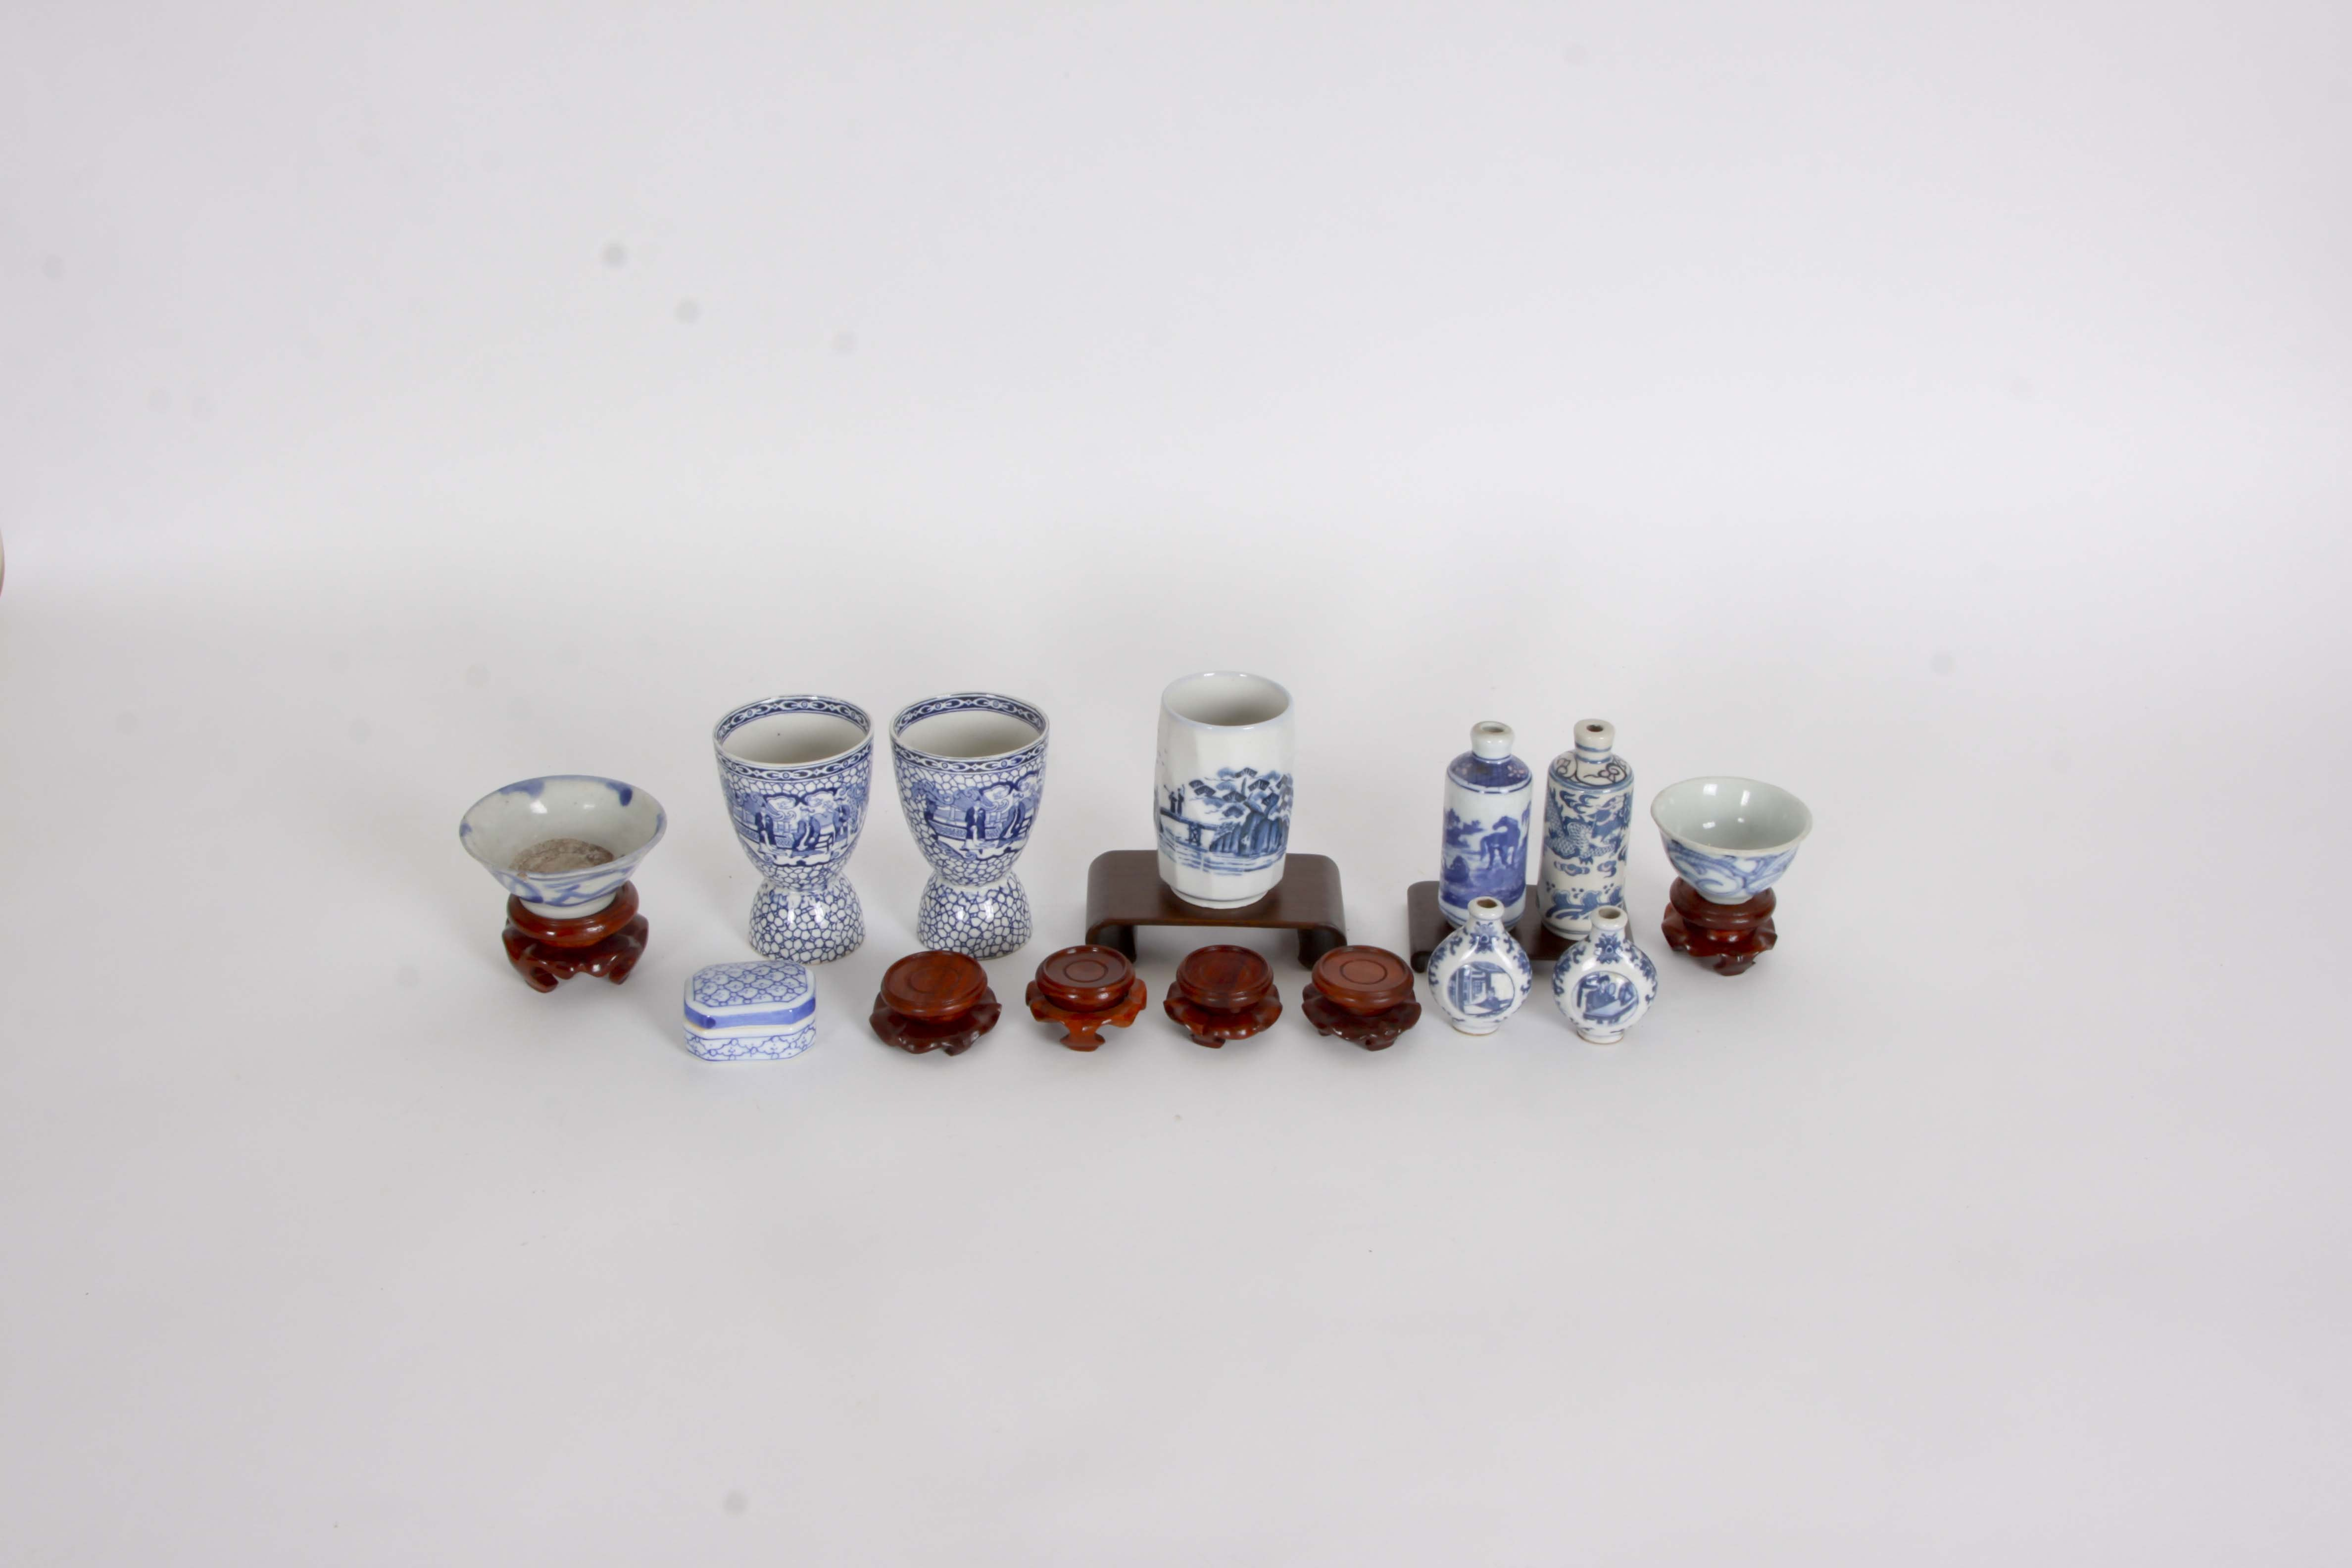 Assorted Chinese Medicinal Bottles and Decor